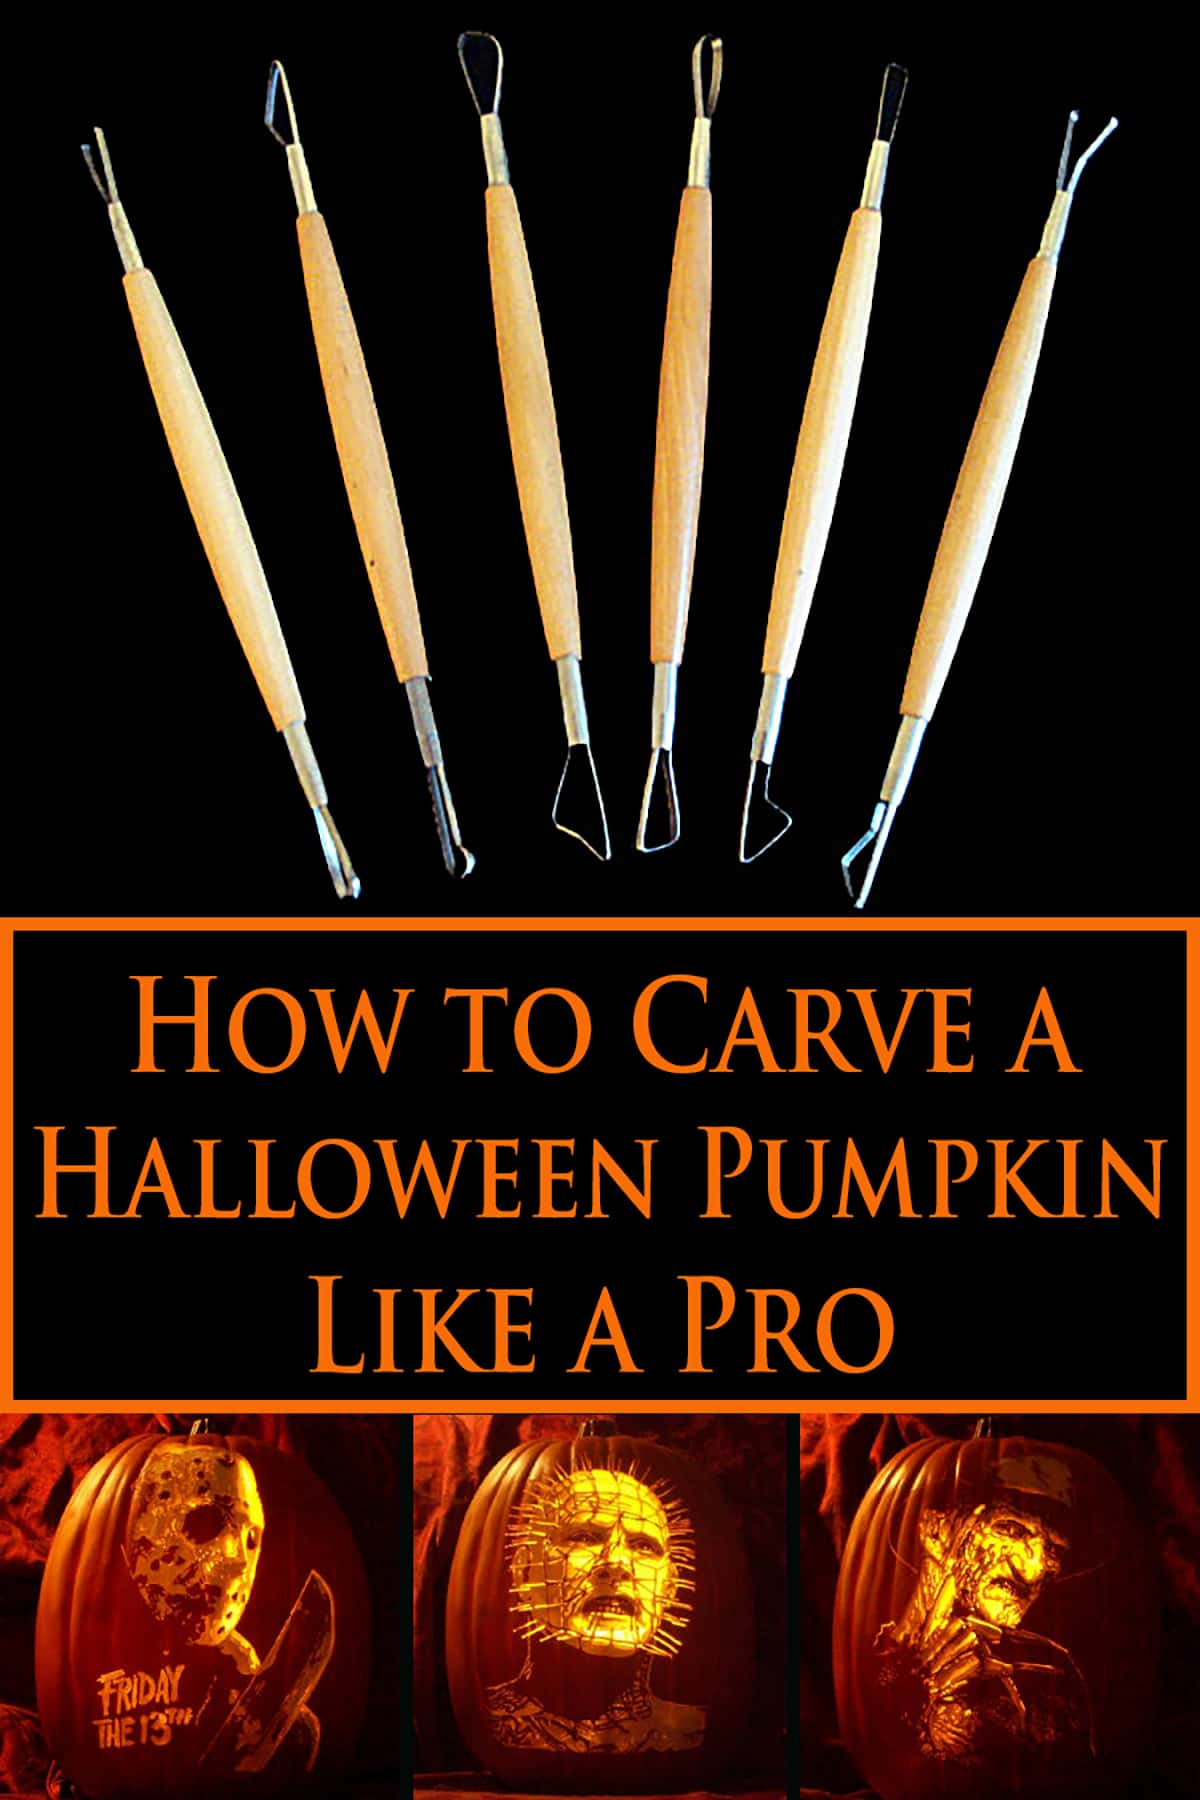 A set of pumpkin carving tools, 3 carved pumpkins, and How to Carve a Halloween Pumpkin Like a Pro in orange text.